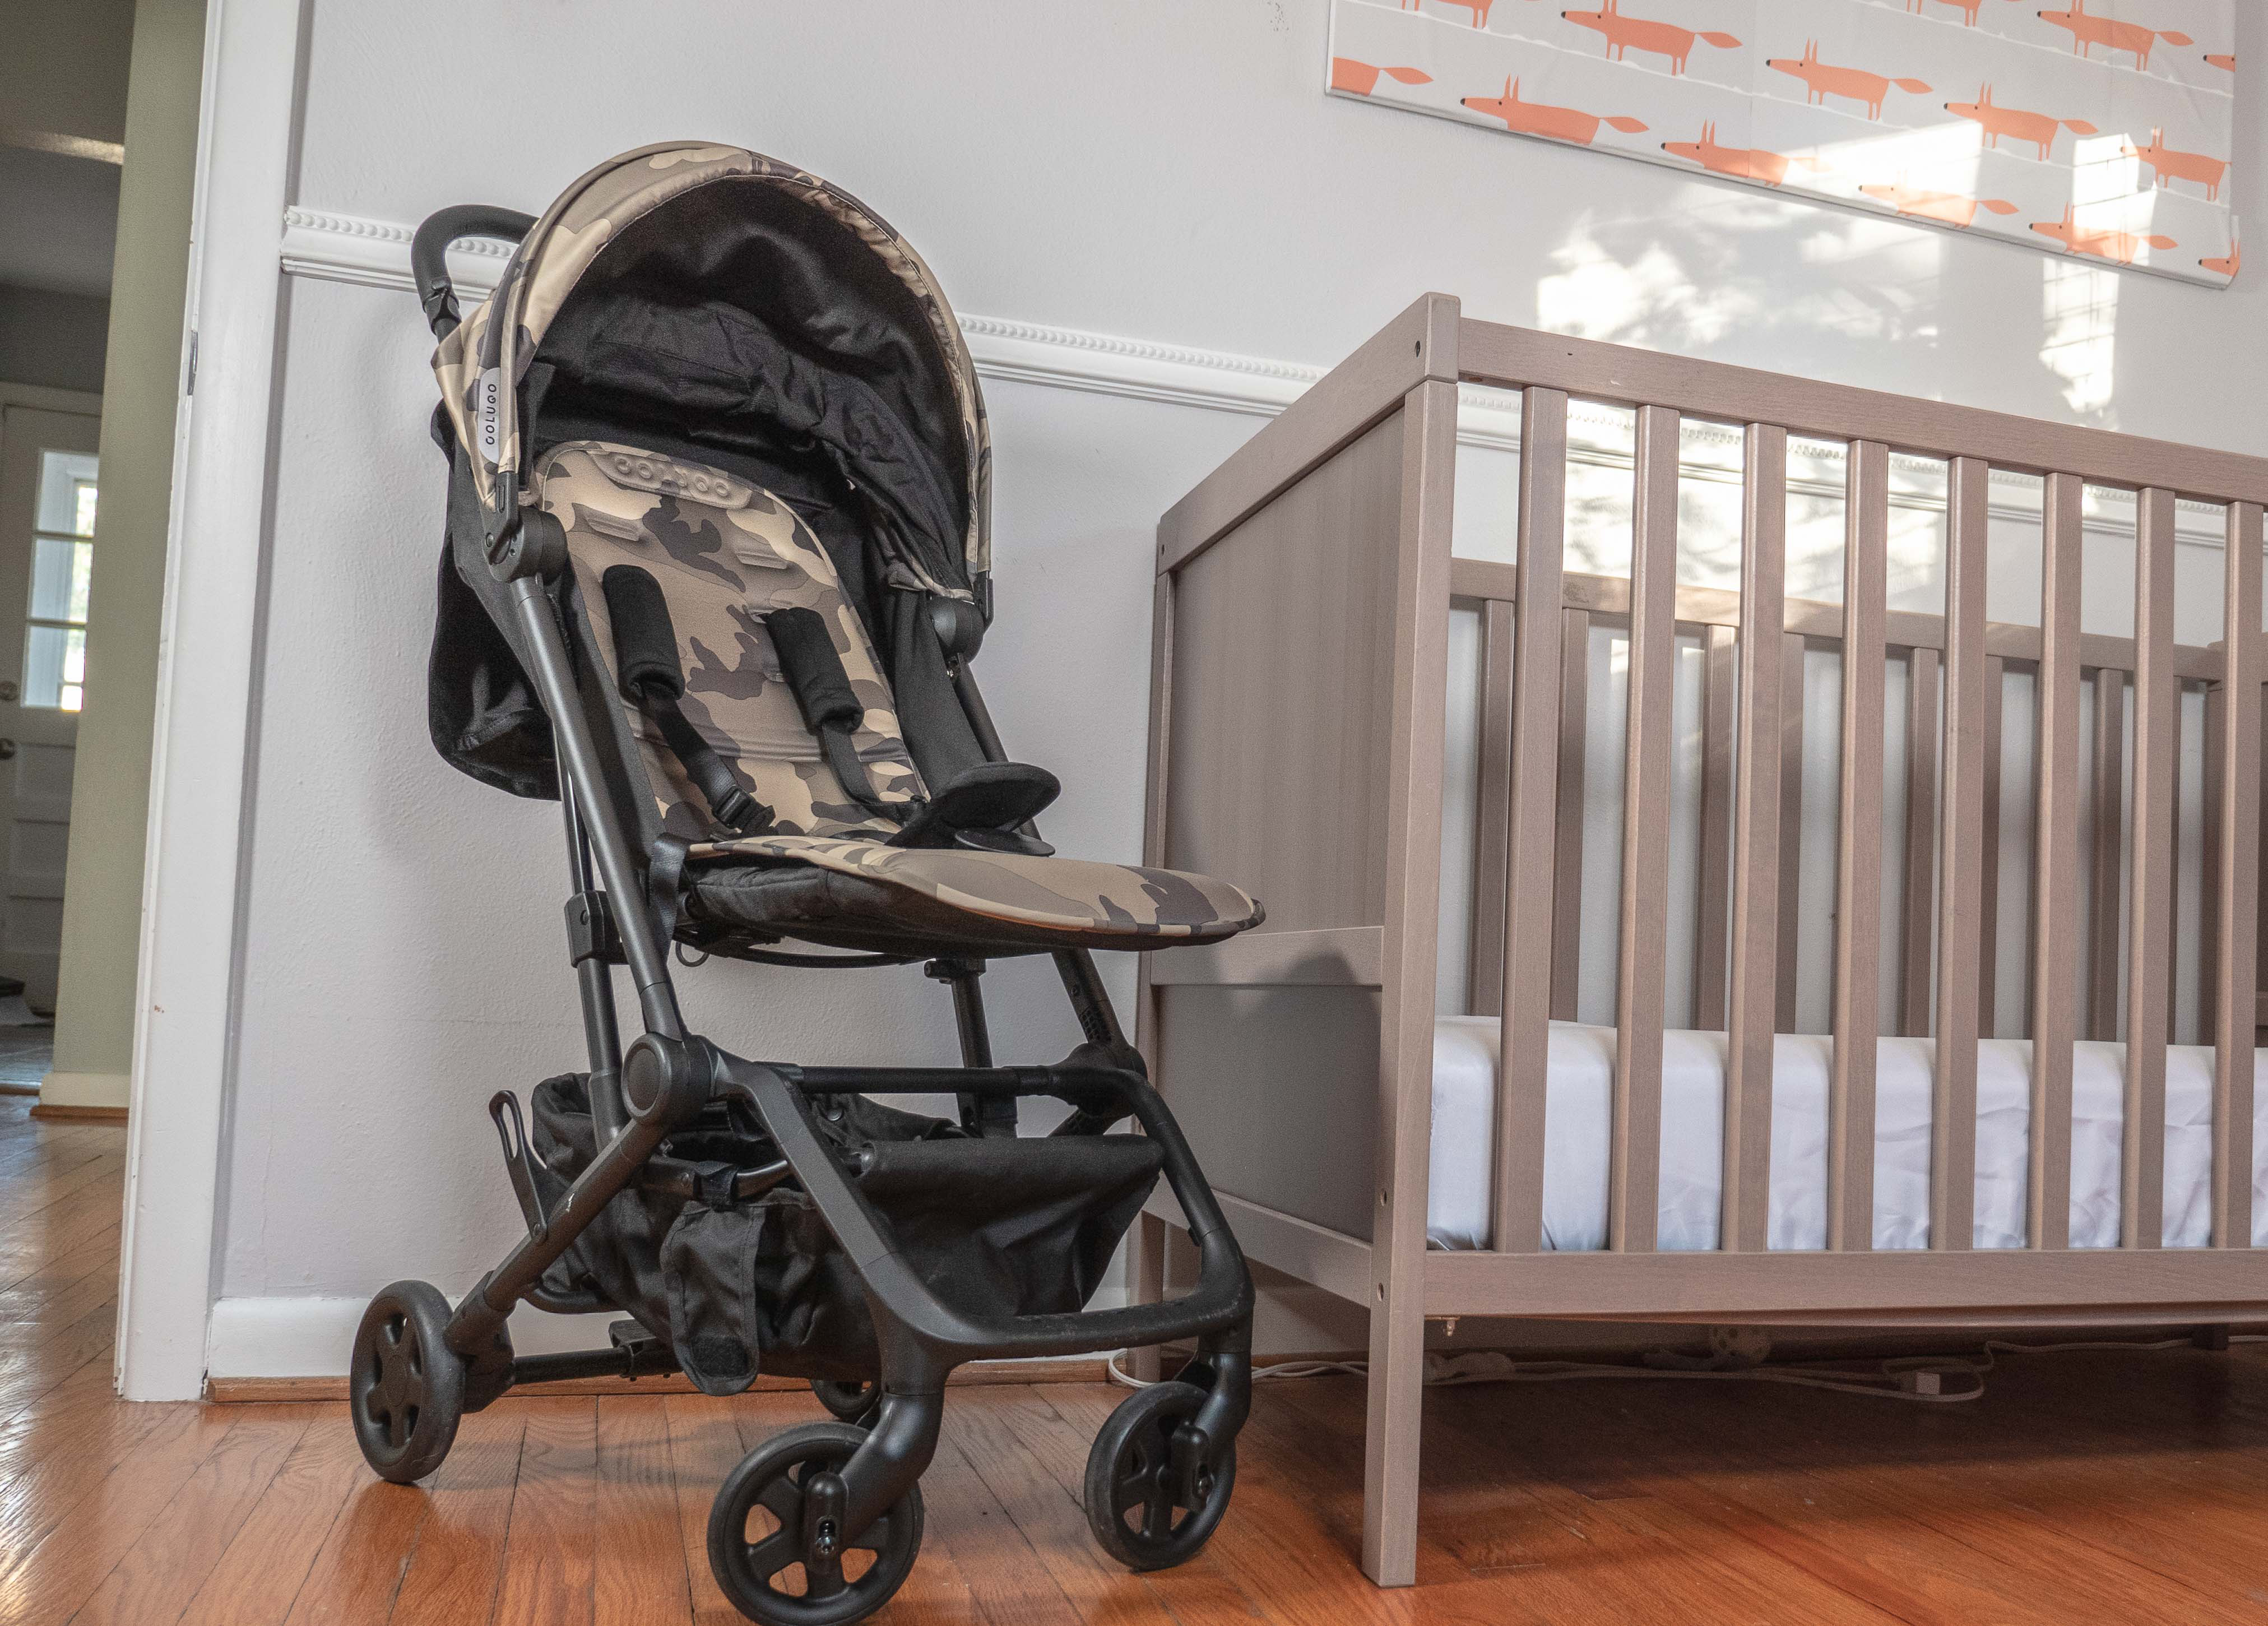 Colugo Compact Stroller next to a crib